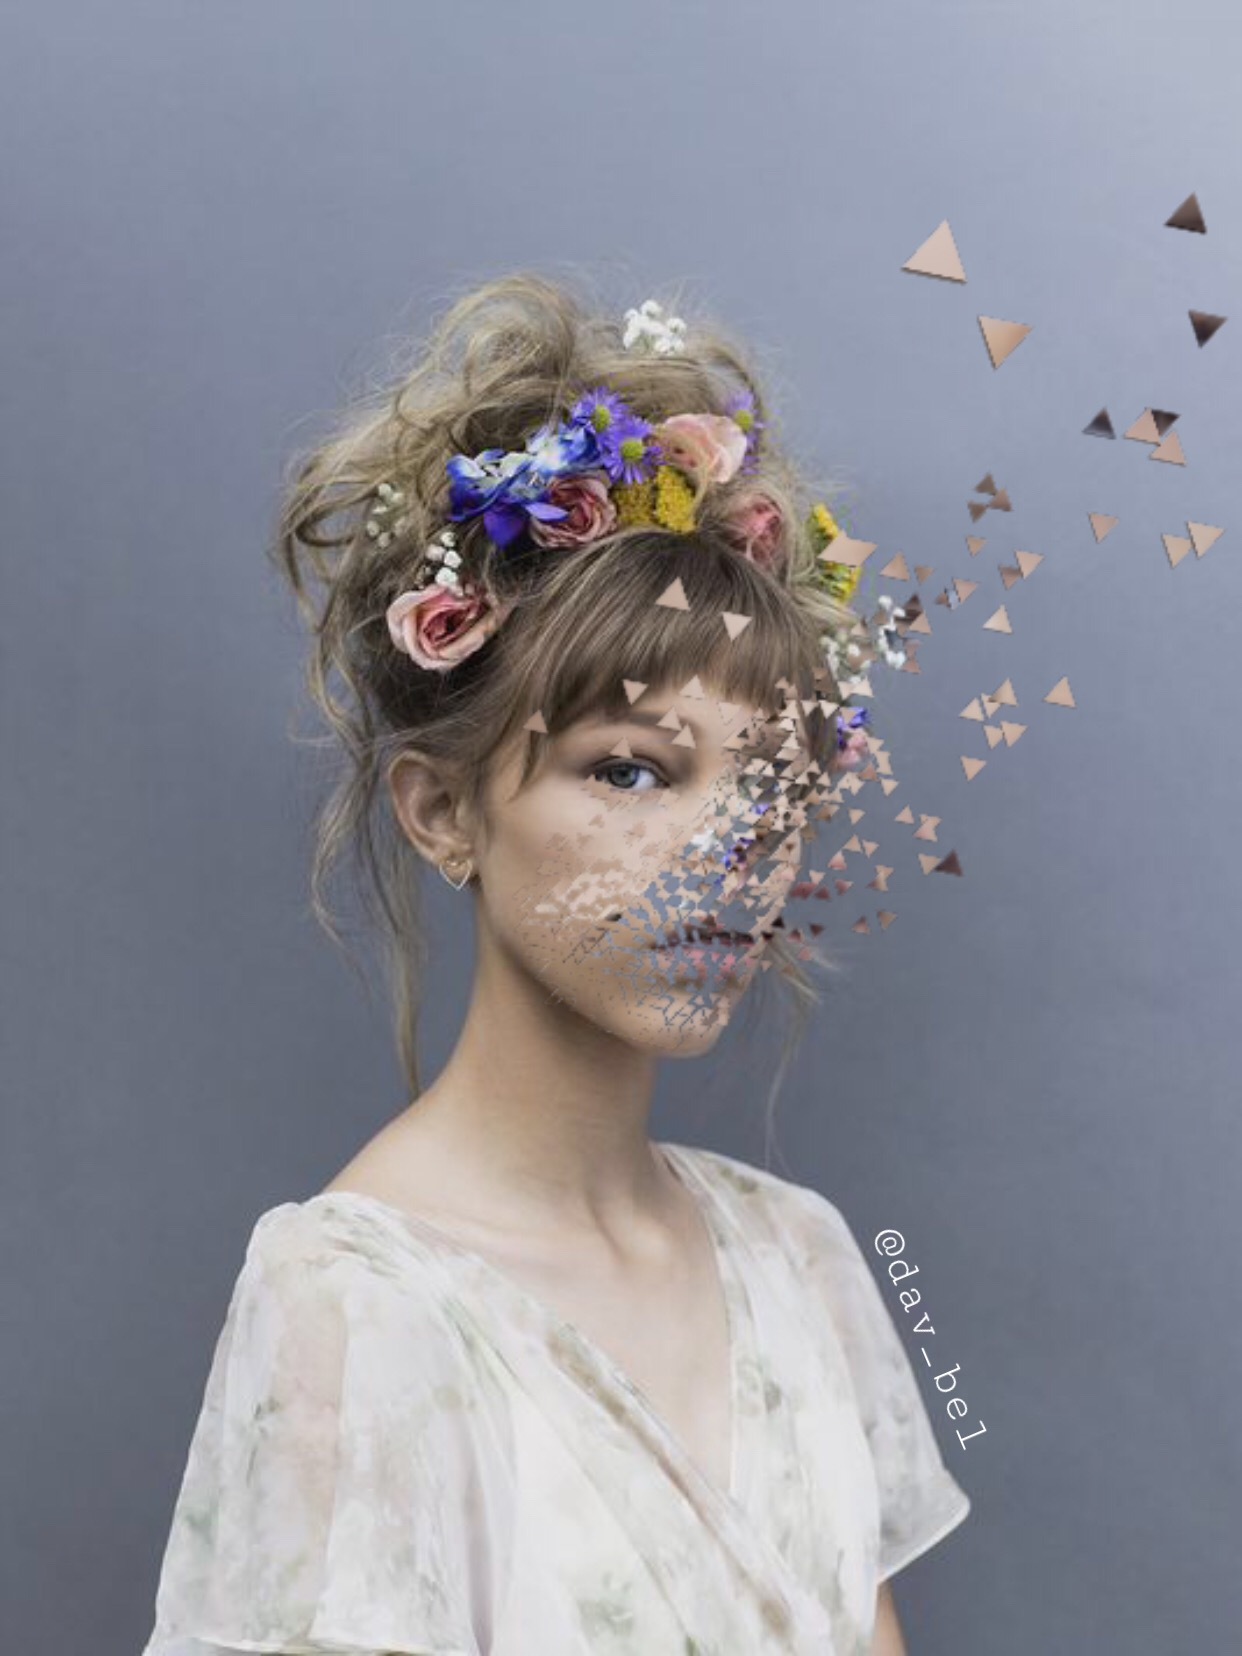 #freetoedit #dispersion #gracevanderwaal #girl #flowers